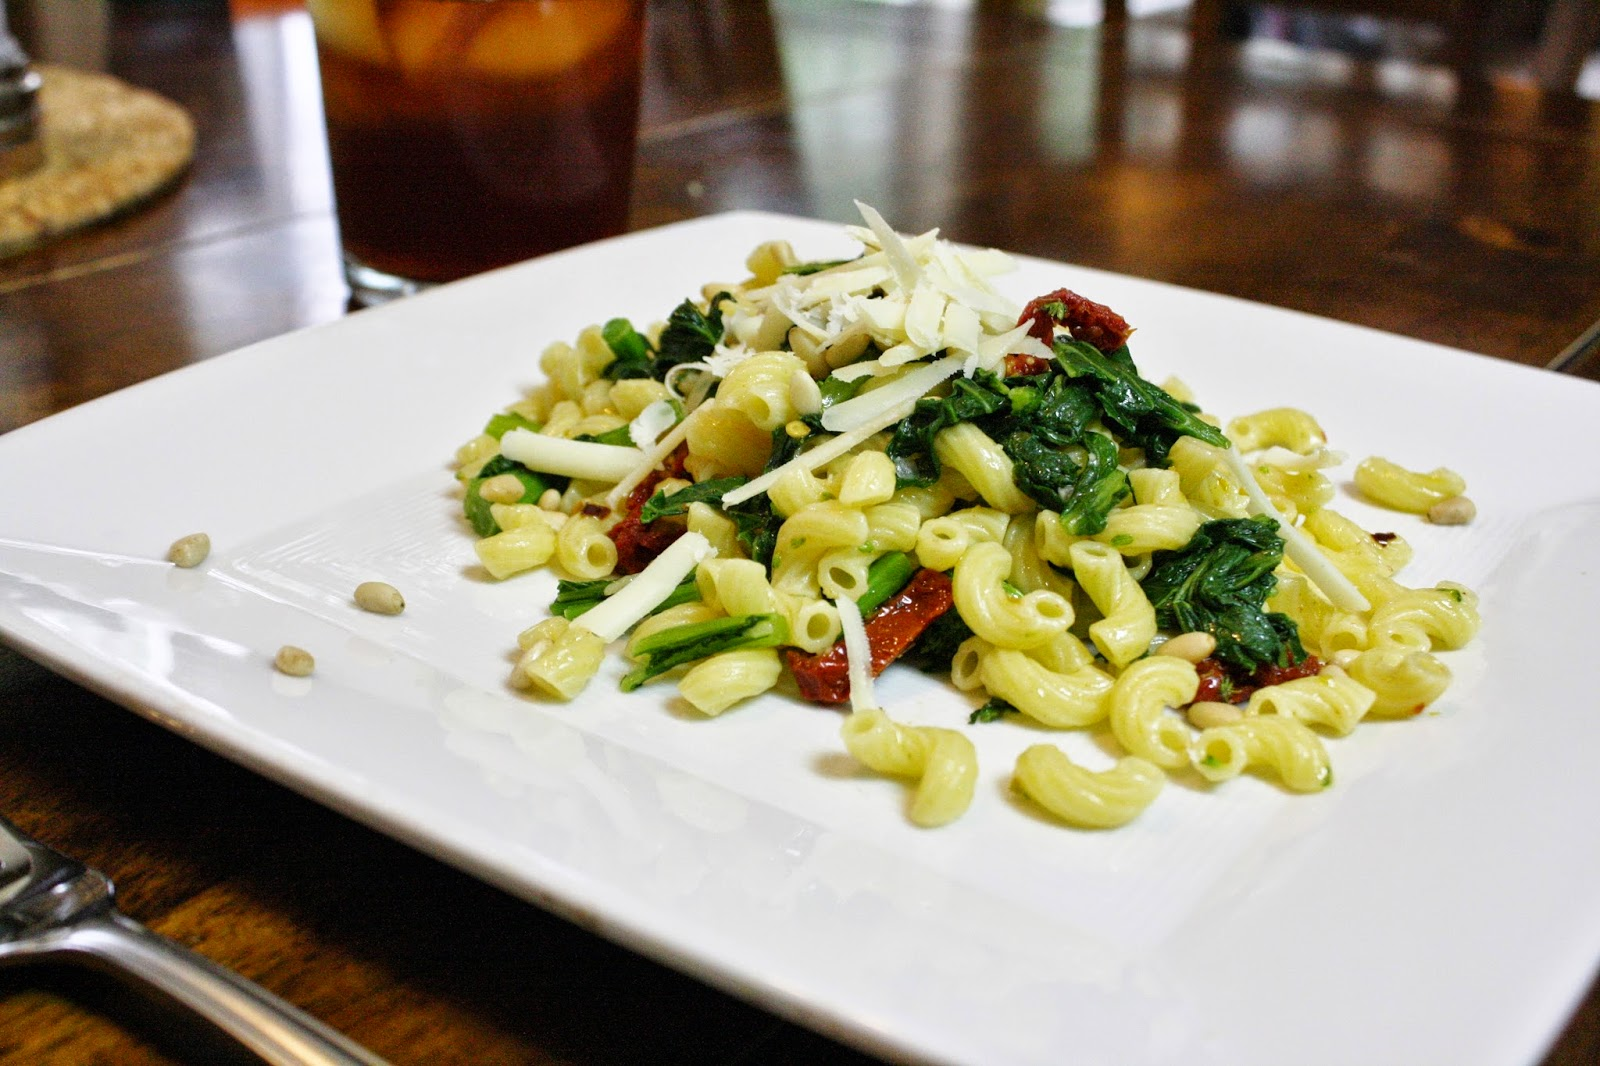 Eat.Pray.Juice.: pasta with broccoli rabe and sun-dried tomatoes